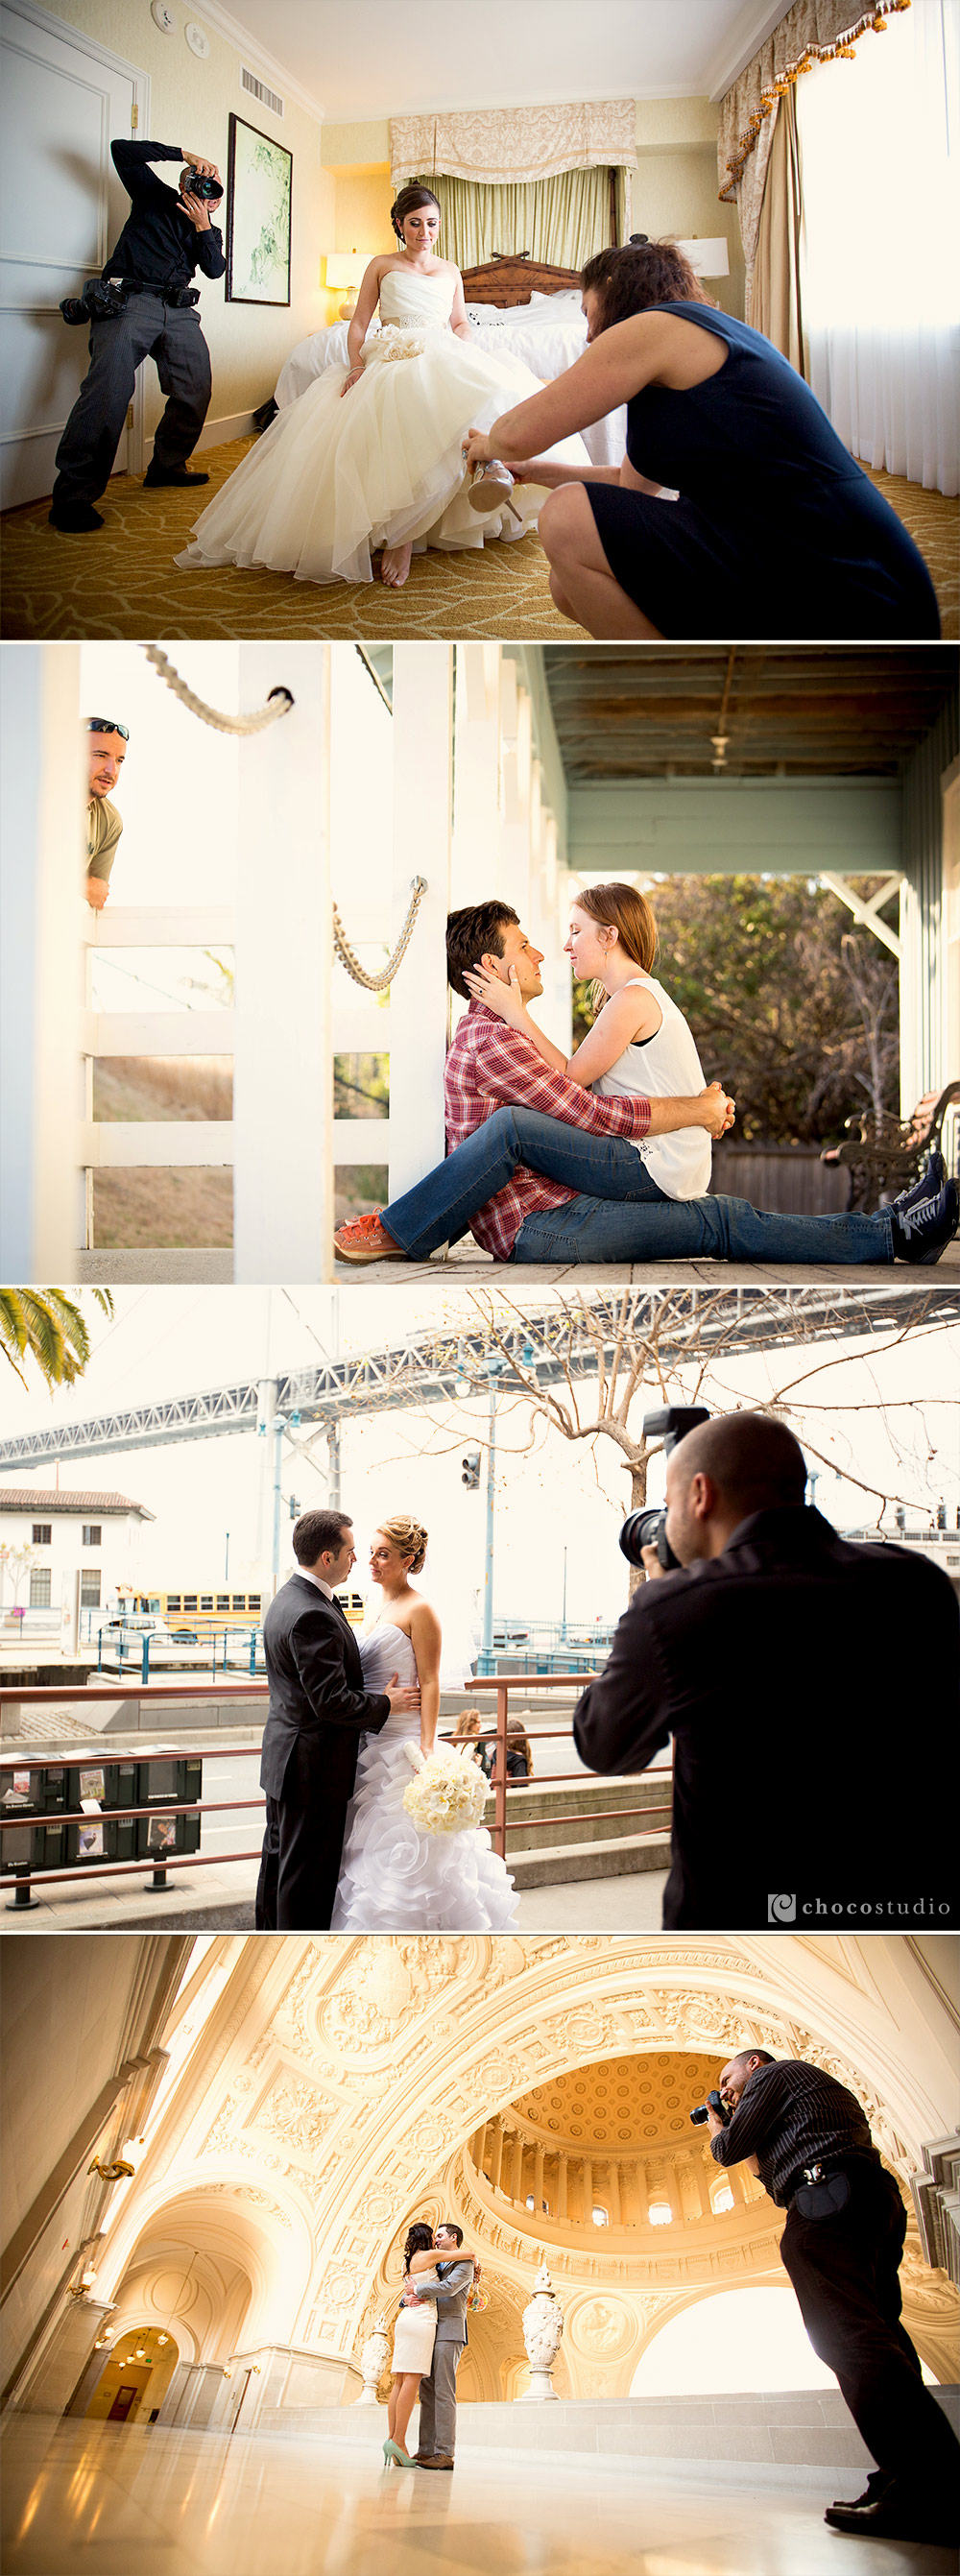 Wedding Photographer San Mateo